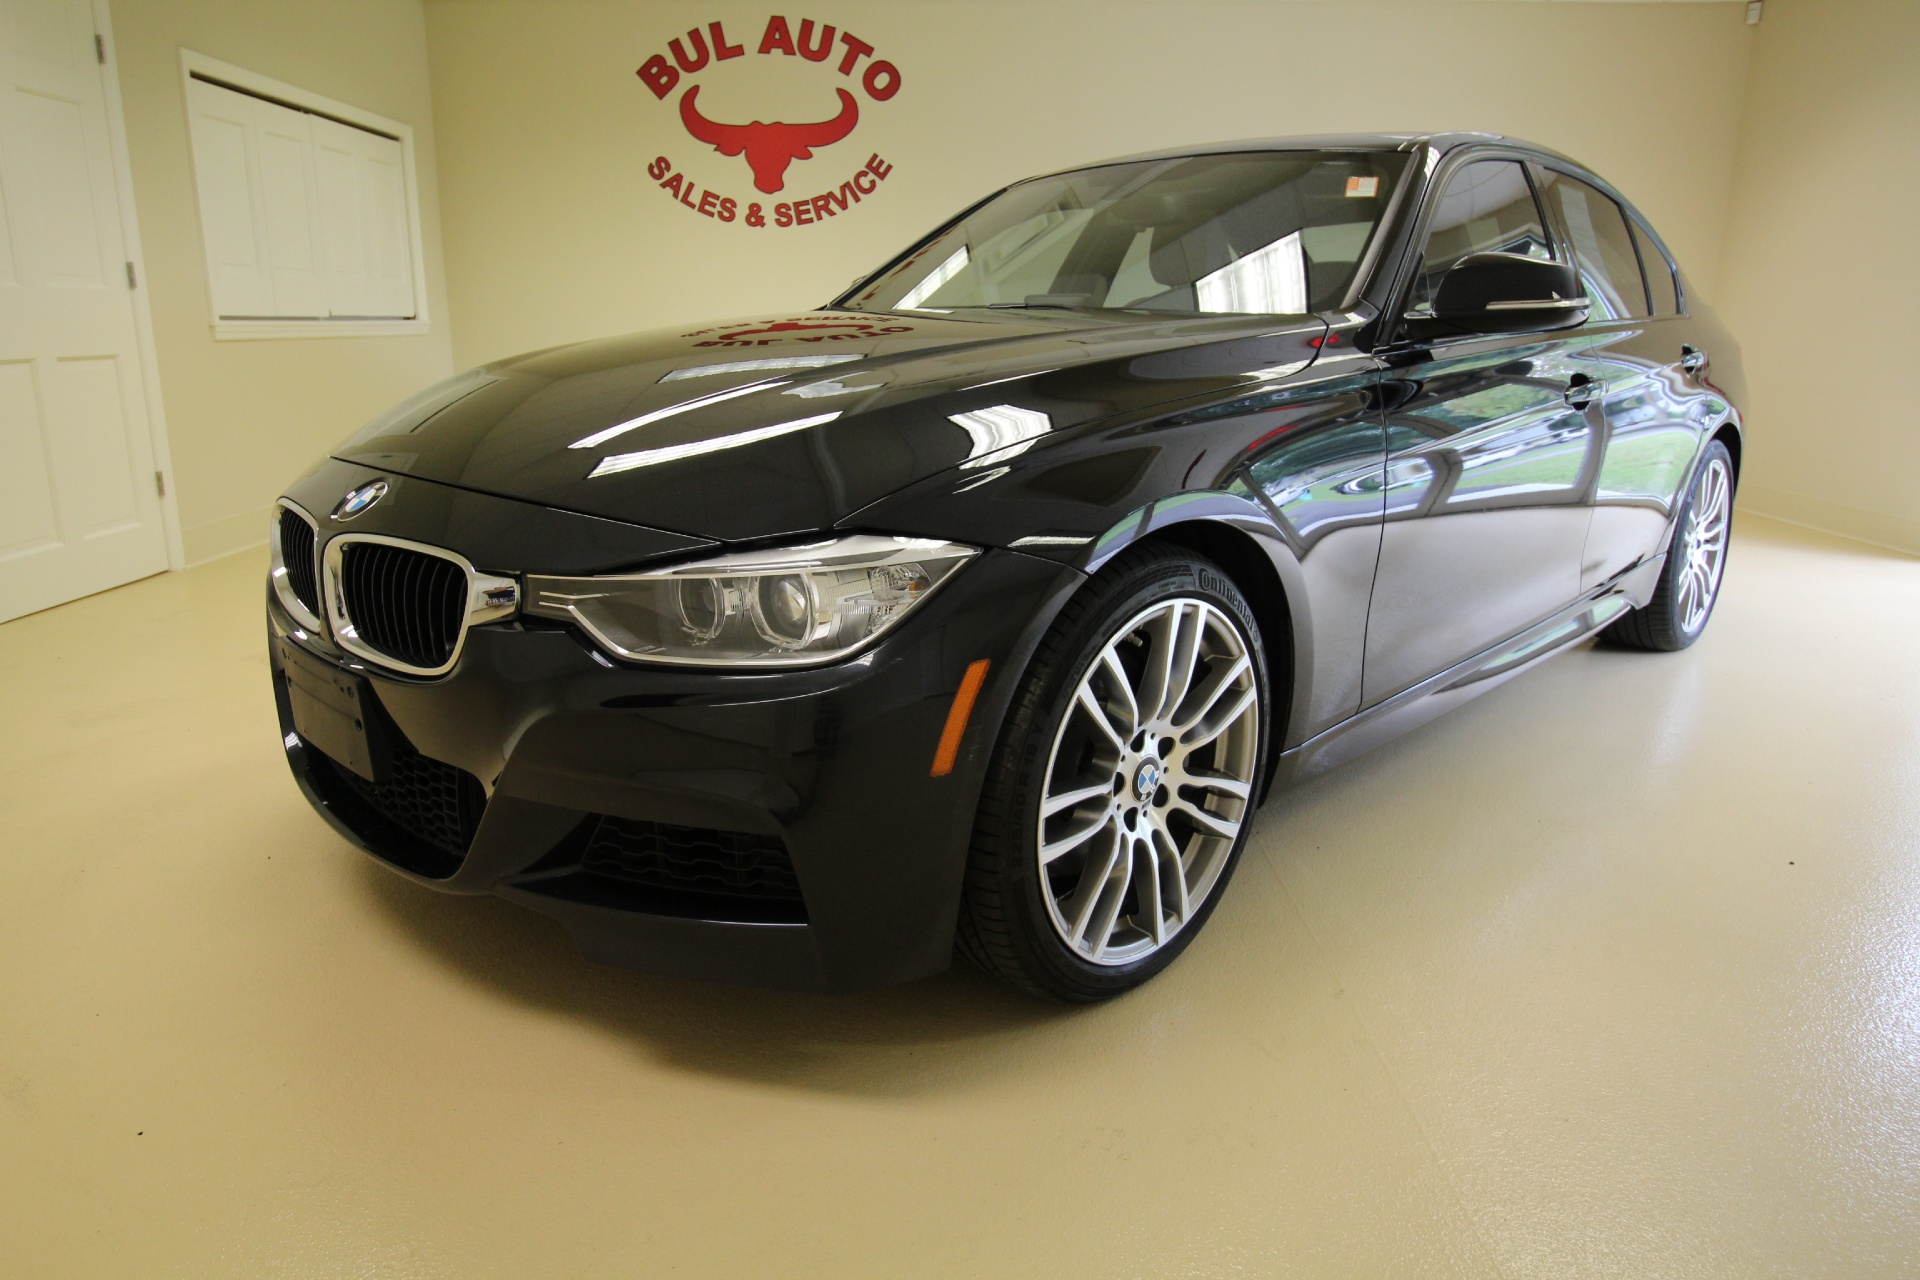 2013 bmw 3 series 335i m sport 6 speed manual stick shift stock 16172 for sale near albany ny. Black Bedroom Furniture Sets. Home Design Ideas